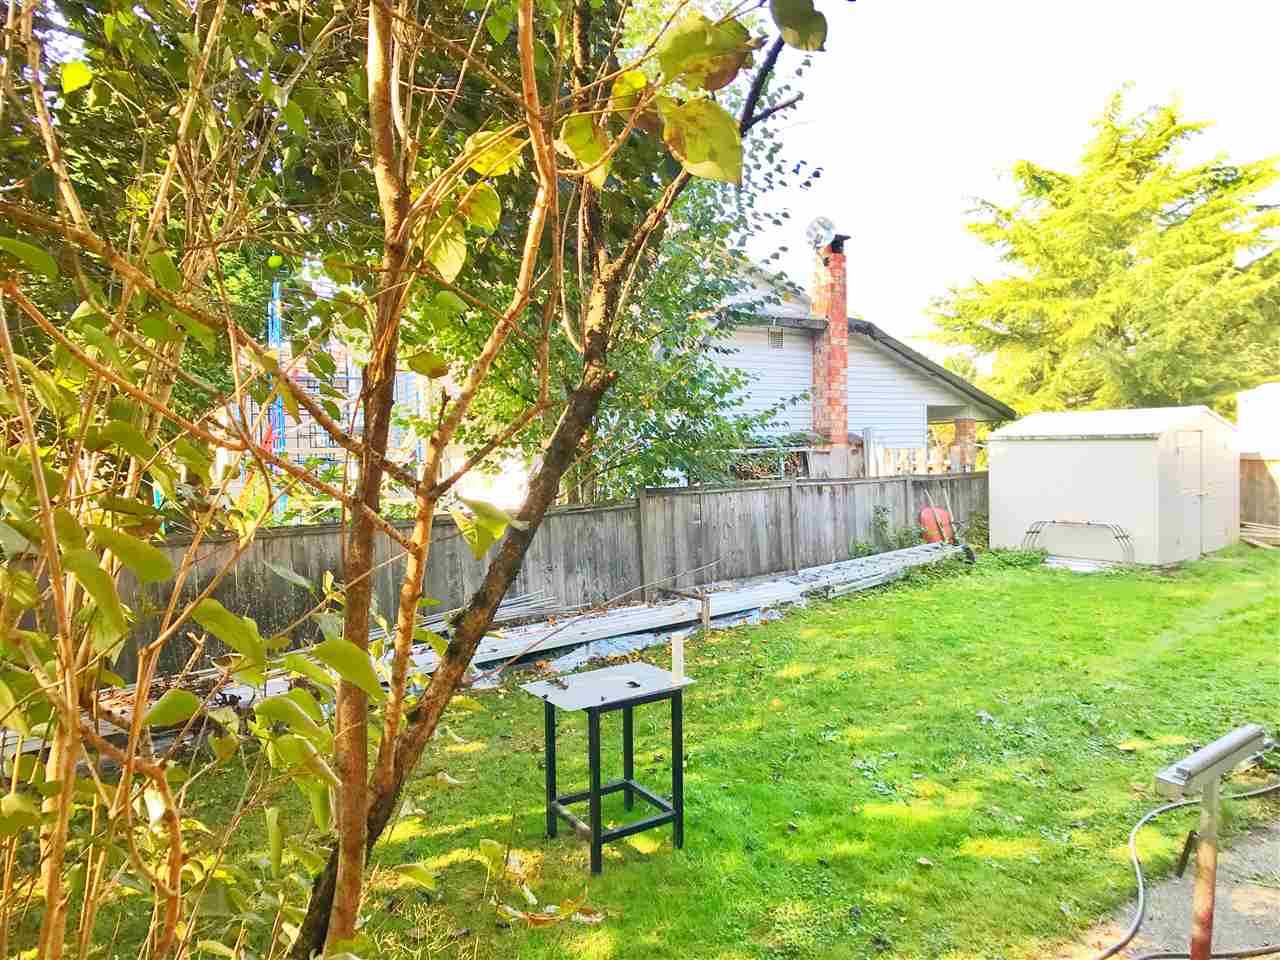 15390 85 AVENUE - Fleetwood Tynehead House/Single Family for sale, 5 Bedrooms (R2504093) - #24